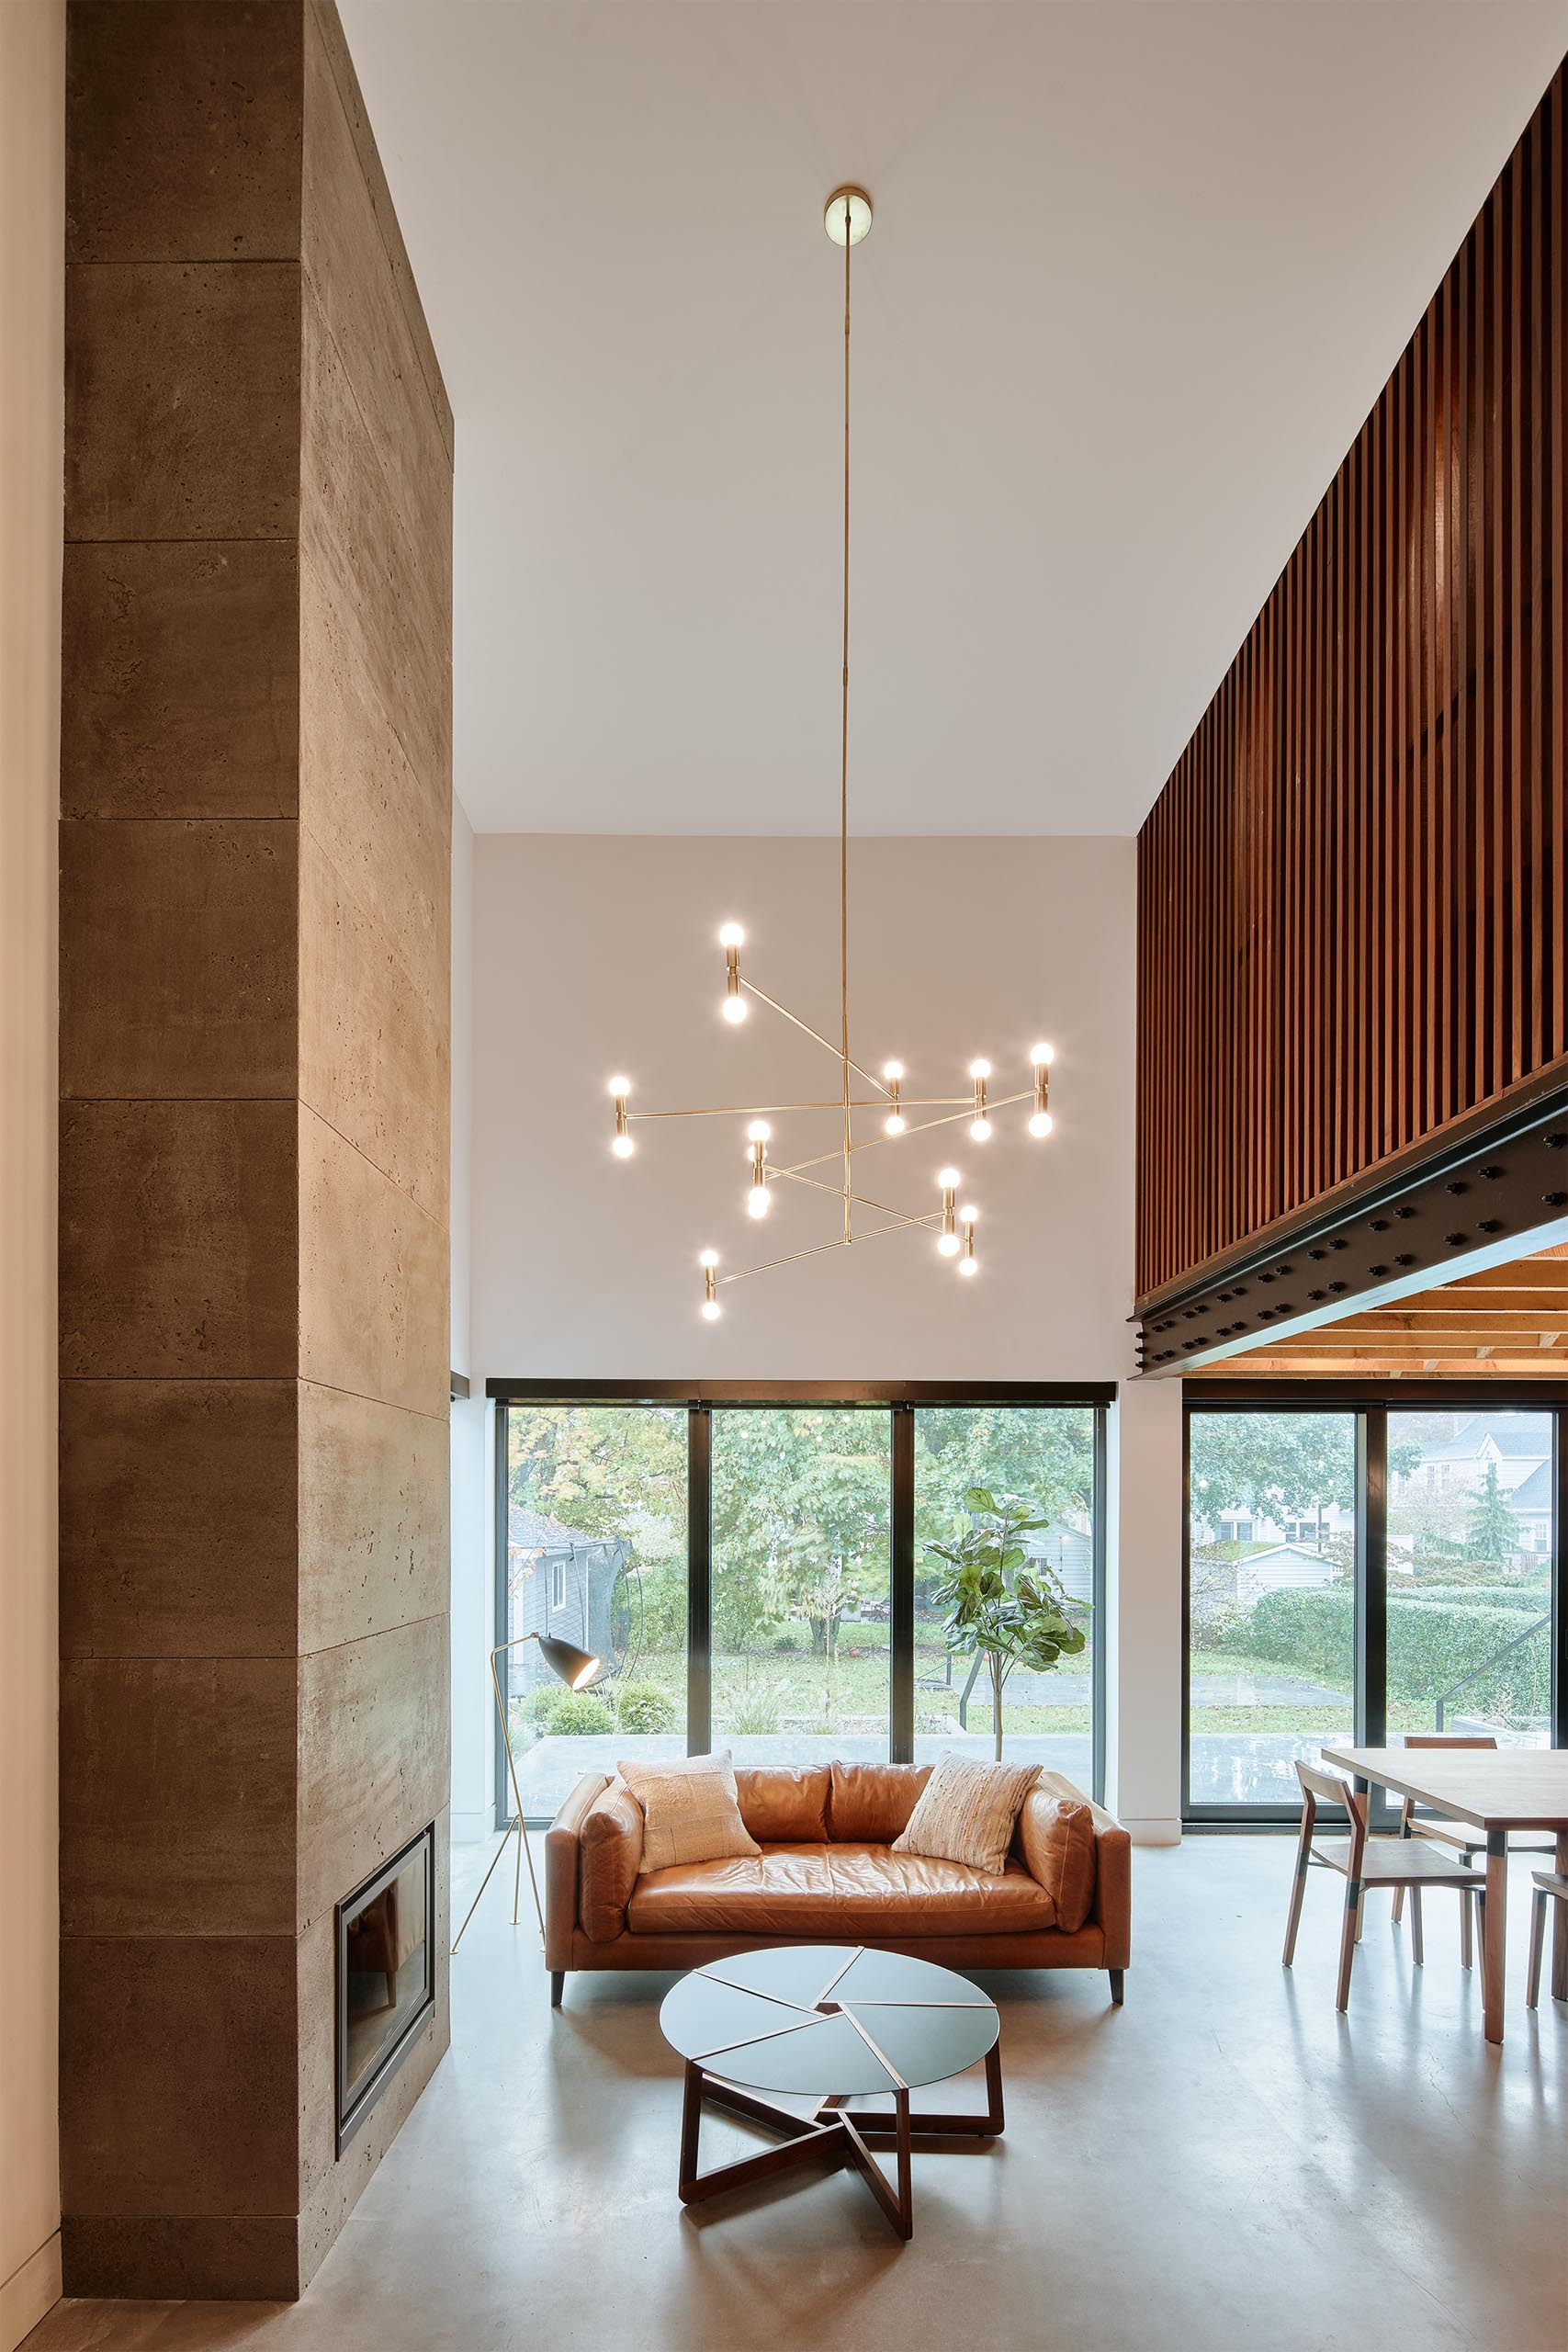 This modern living room has a double height ceiling, a fireplace, and a modern chandelier.